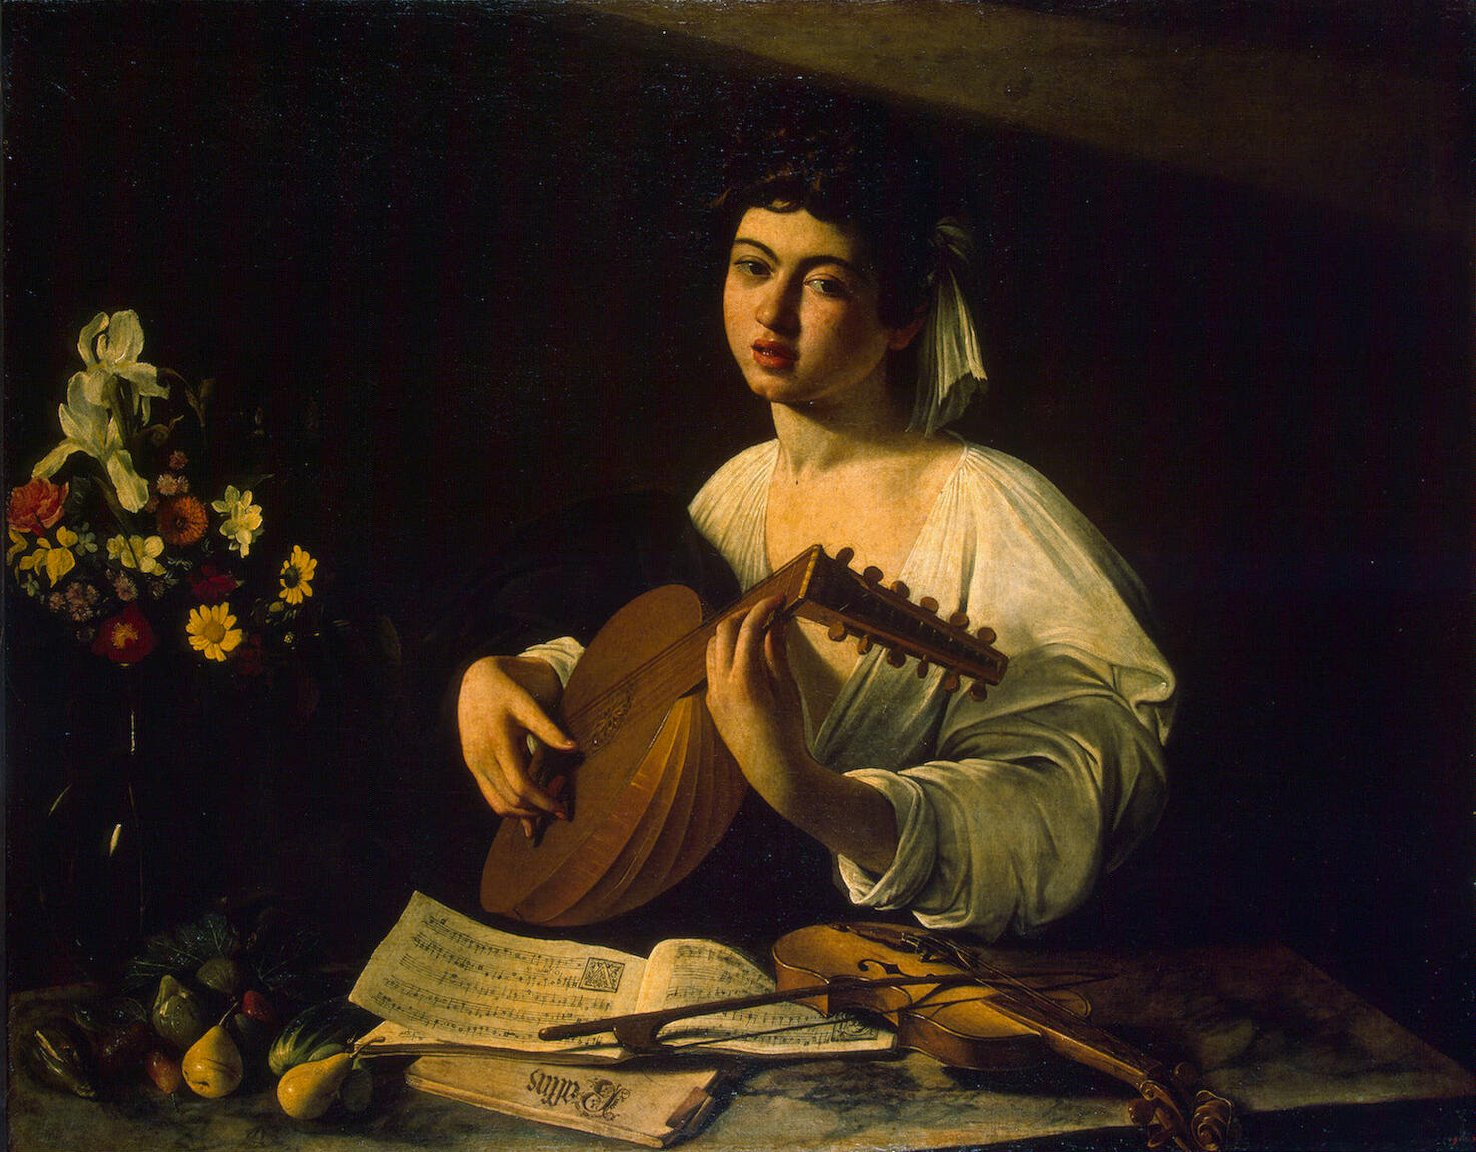 The Lute Player, c.1596 - Caravaggio - WikiArt.org